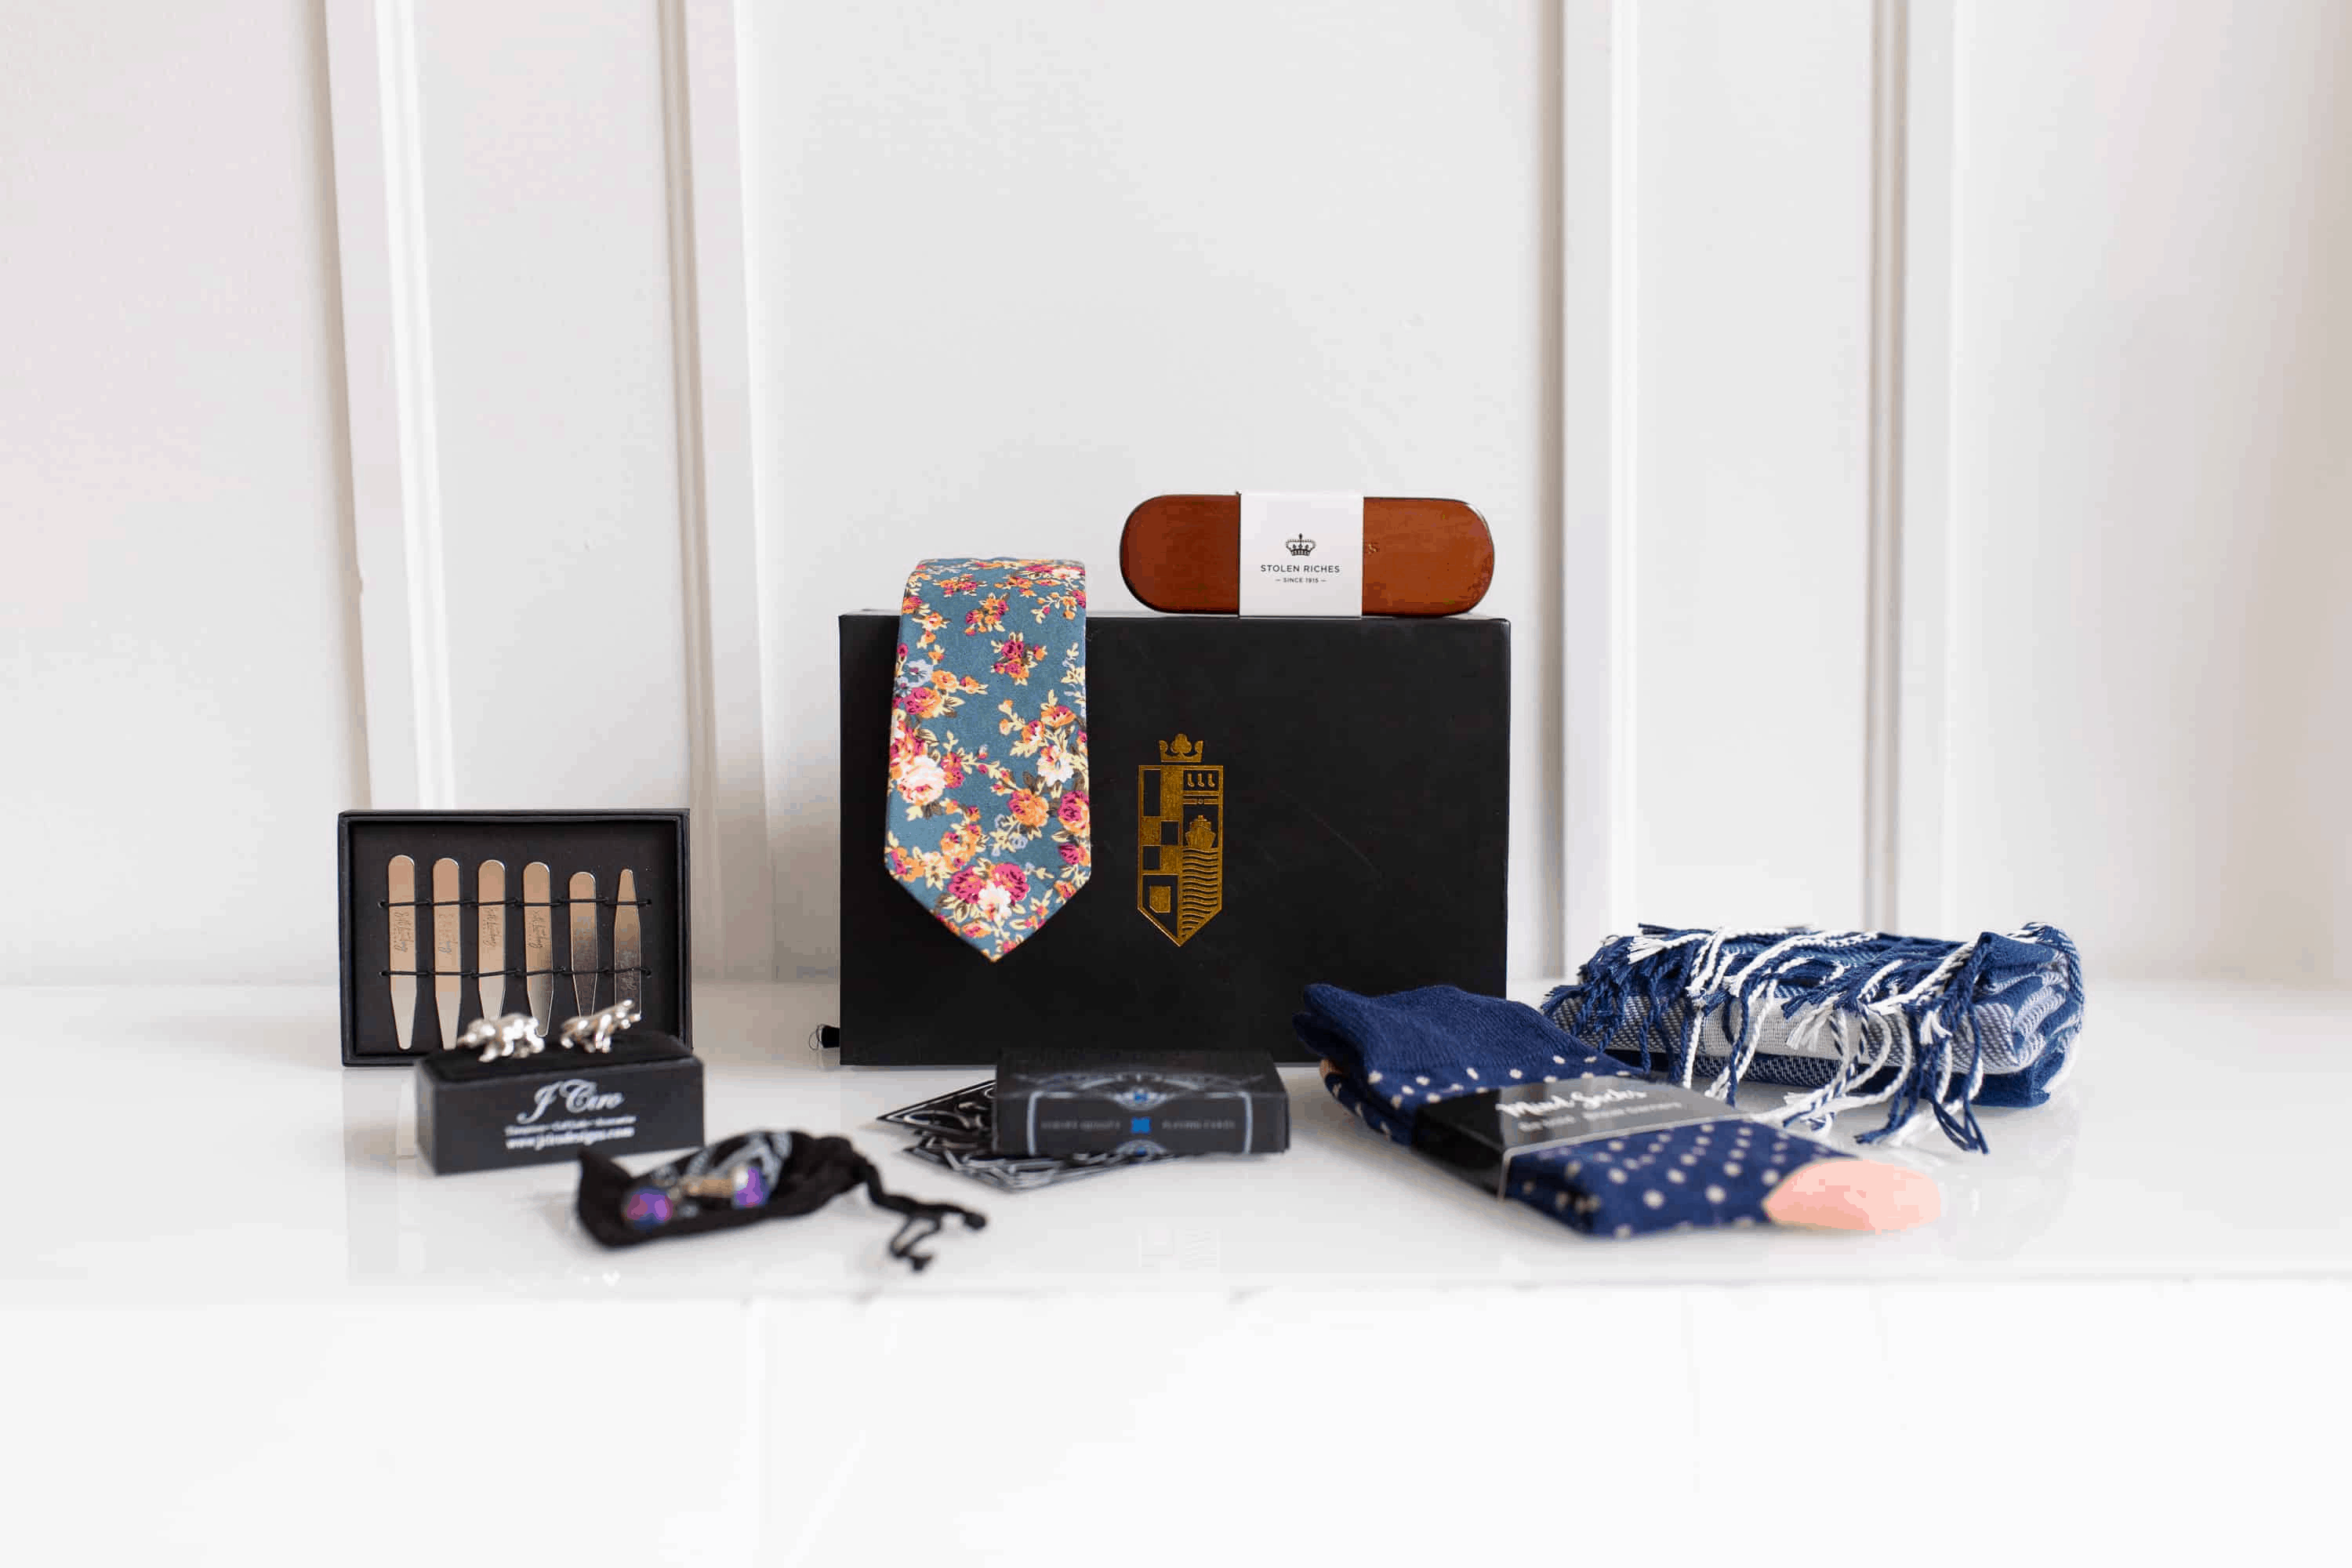 King x Portland Clothing Black Friday & Cyber Monday Deal: Get 30% Off Our Fully Customizable Men's Style Box + FREE SHIPPING!